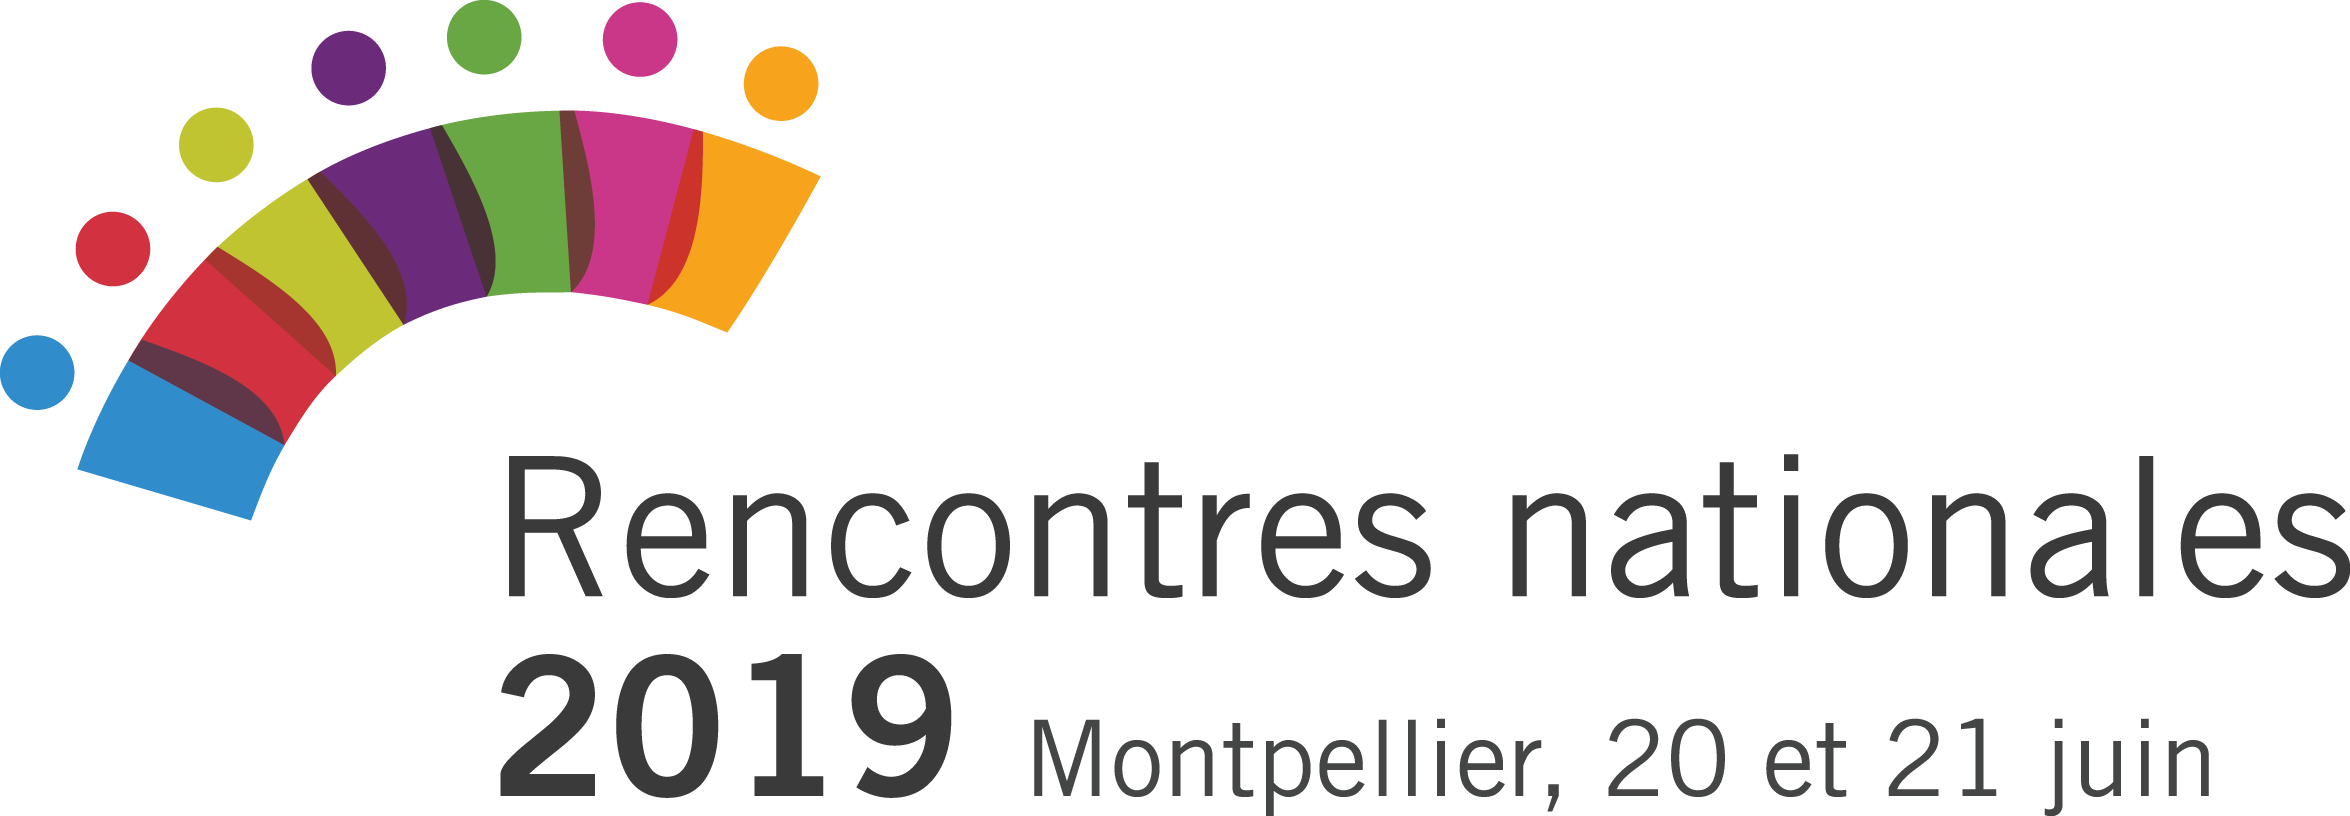 Logo Rencontres nationales 2019